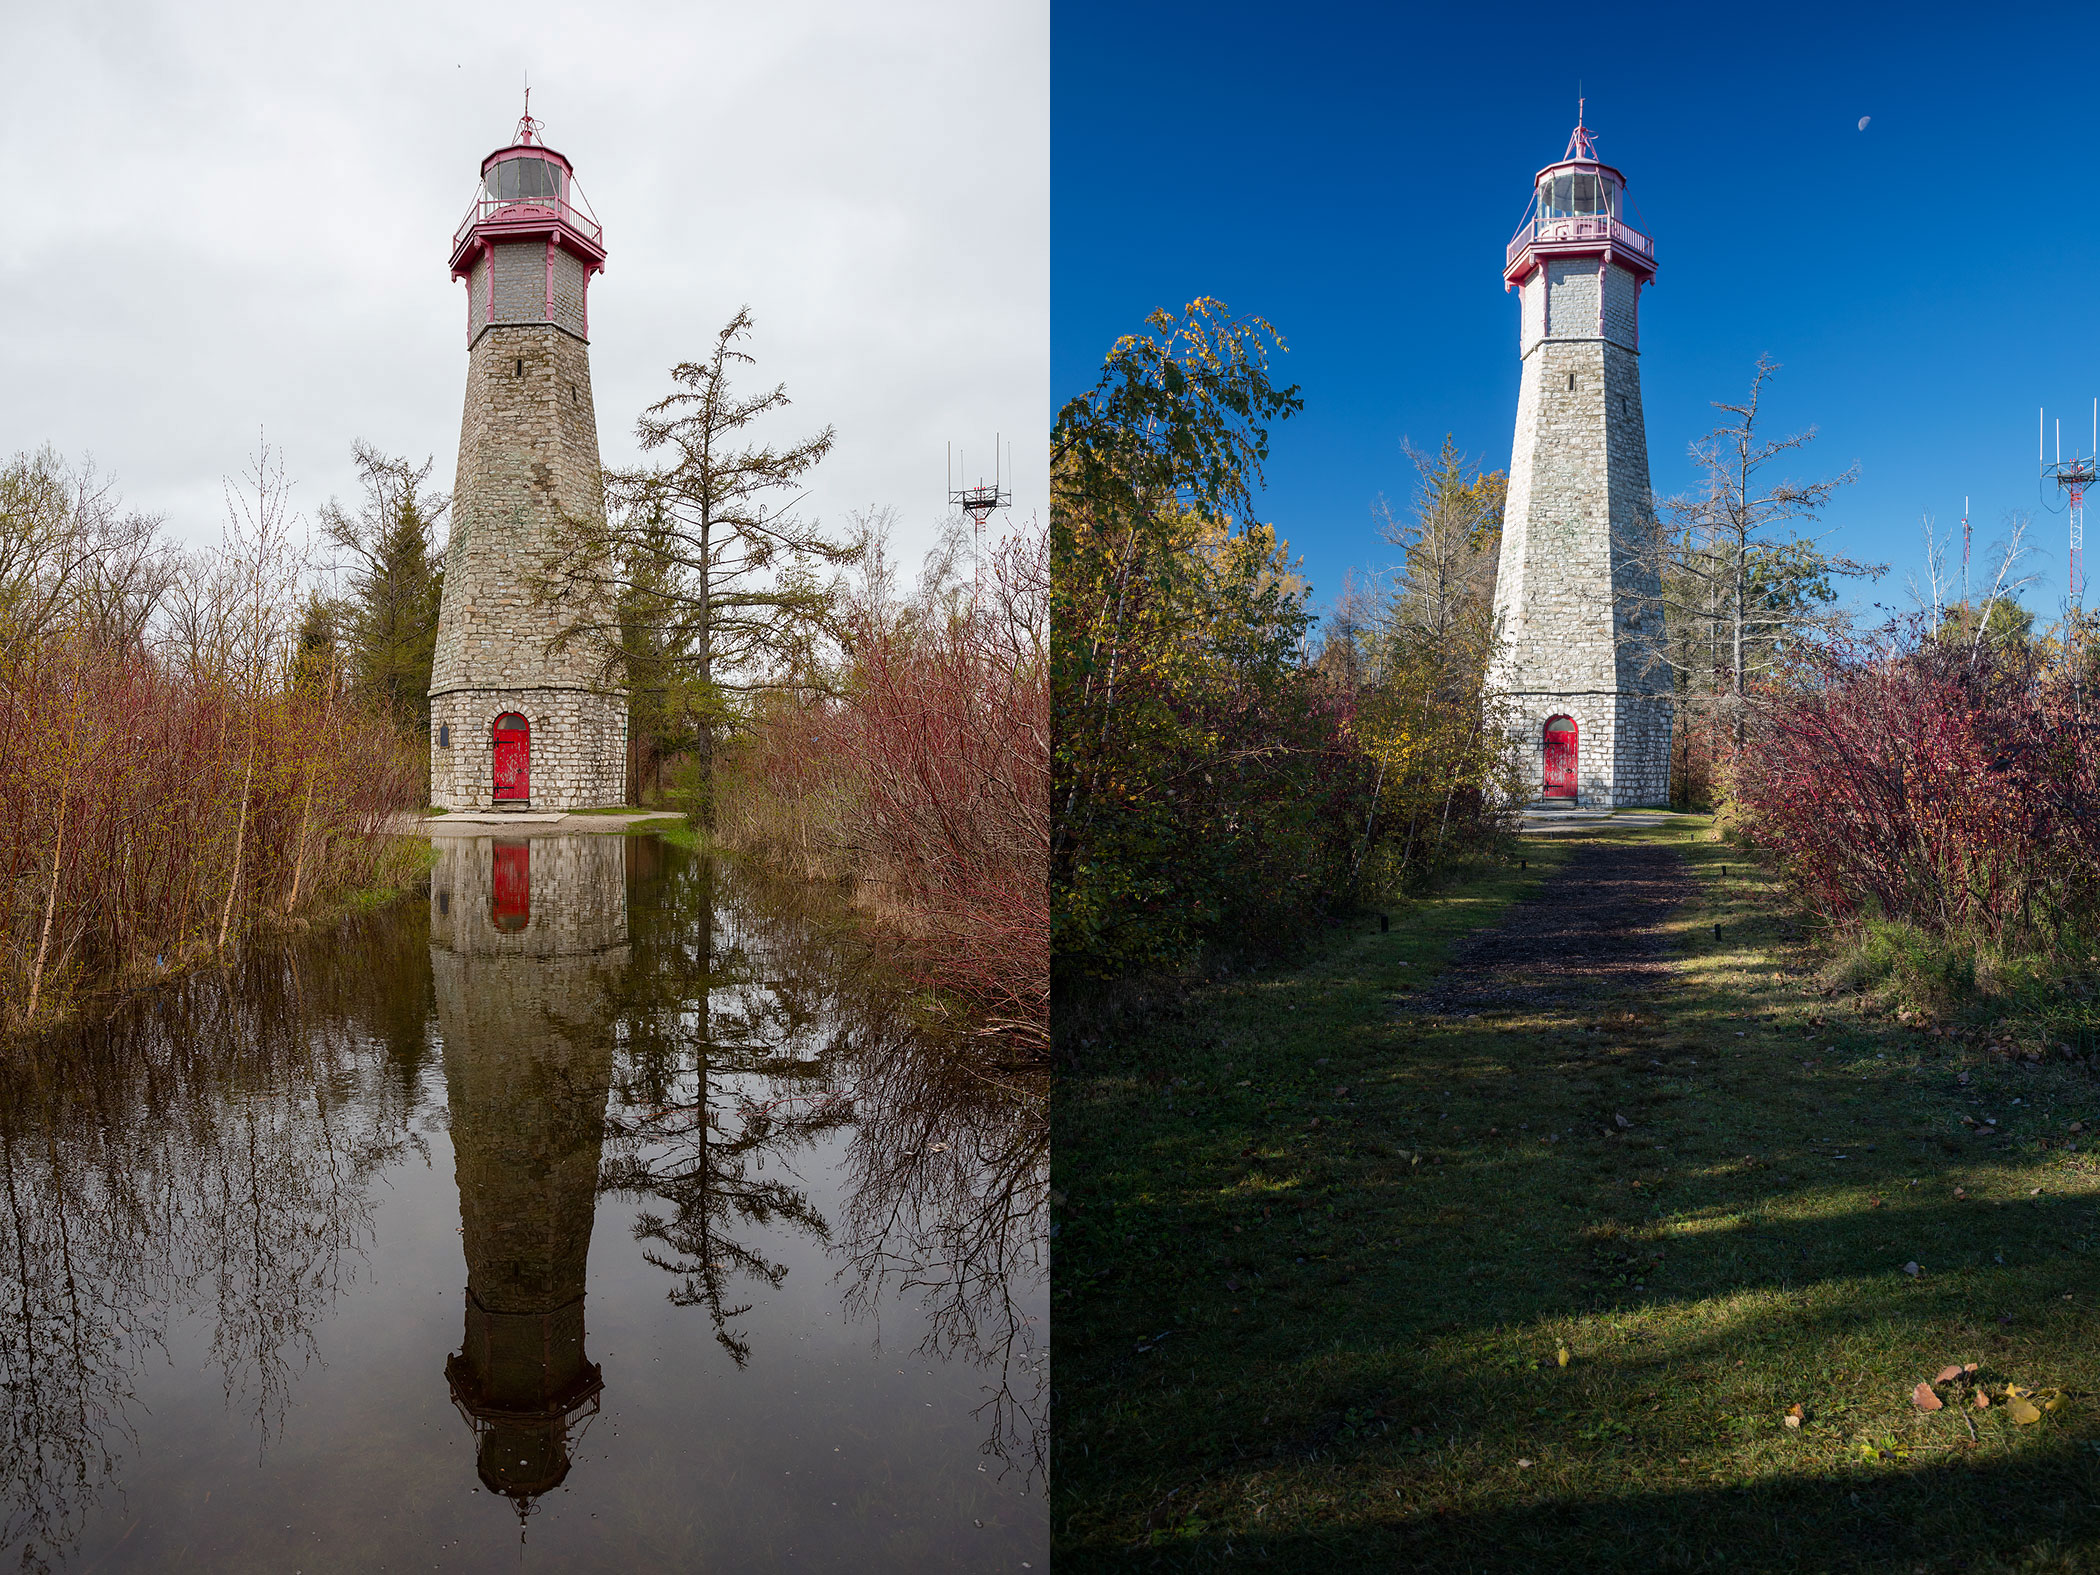 Gibraltar Point lighthouse during and after the Flood of 2017, Hanlan's Point, Toronto Islands